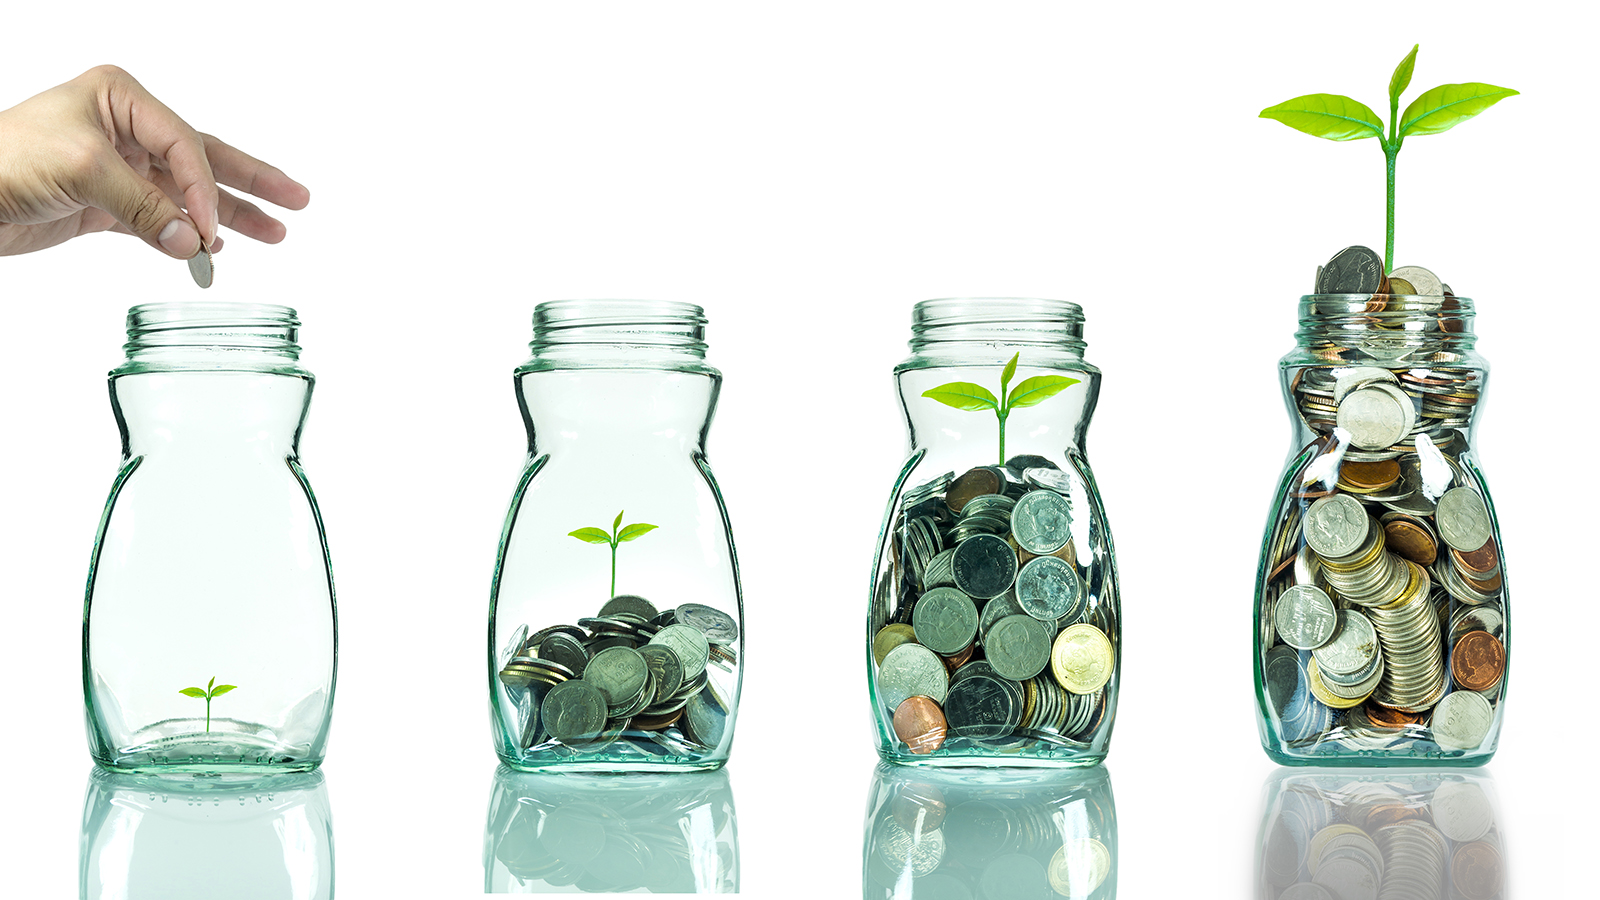 Seed growing in glass jar with coins